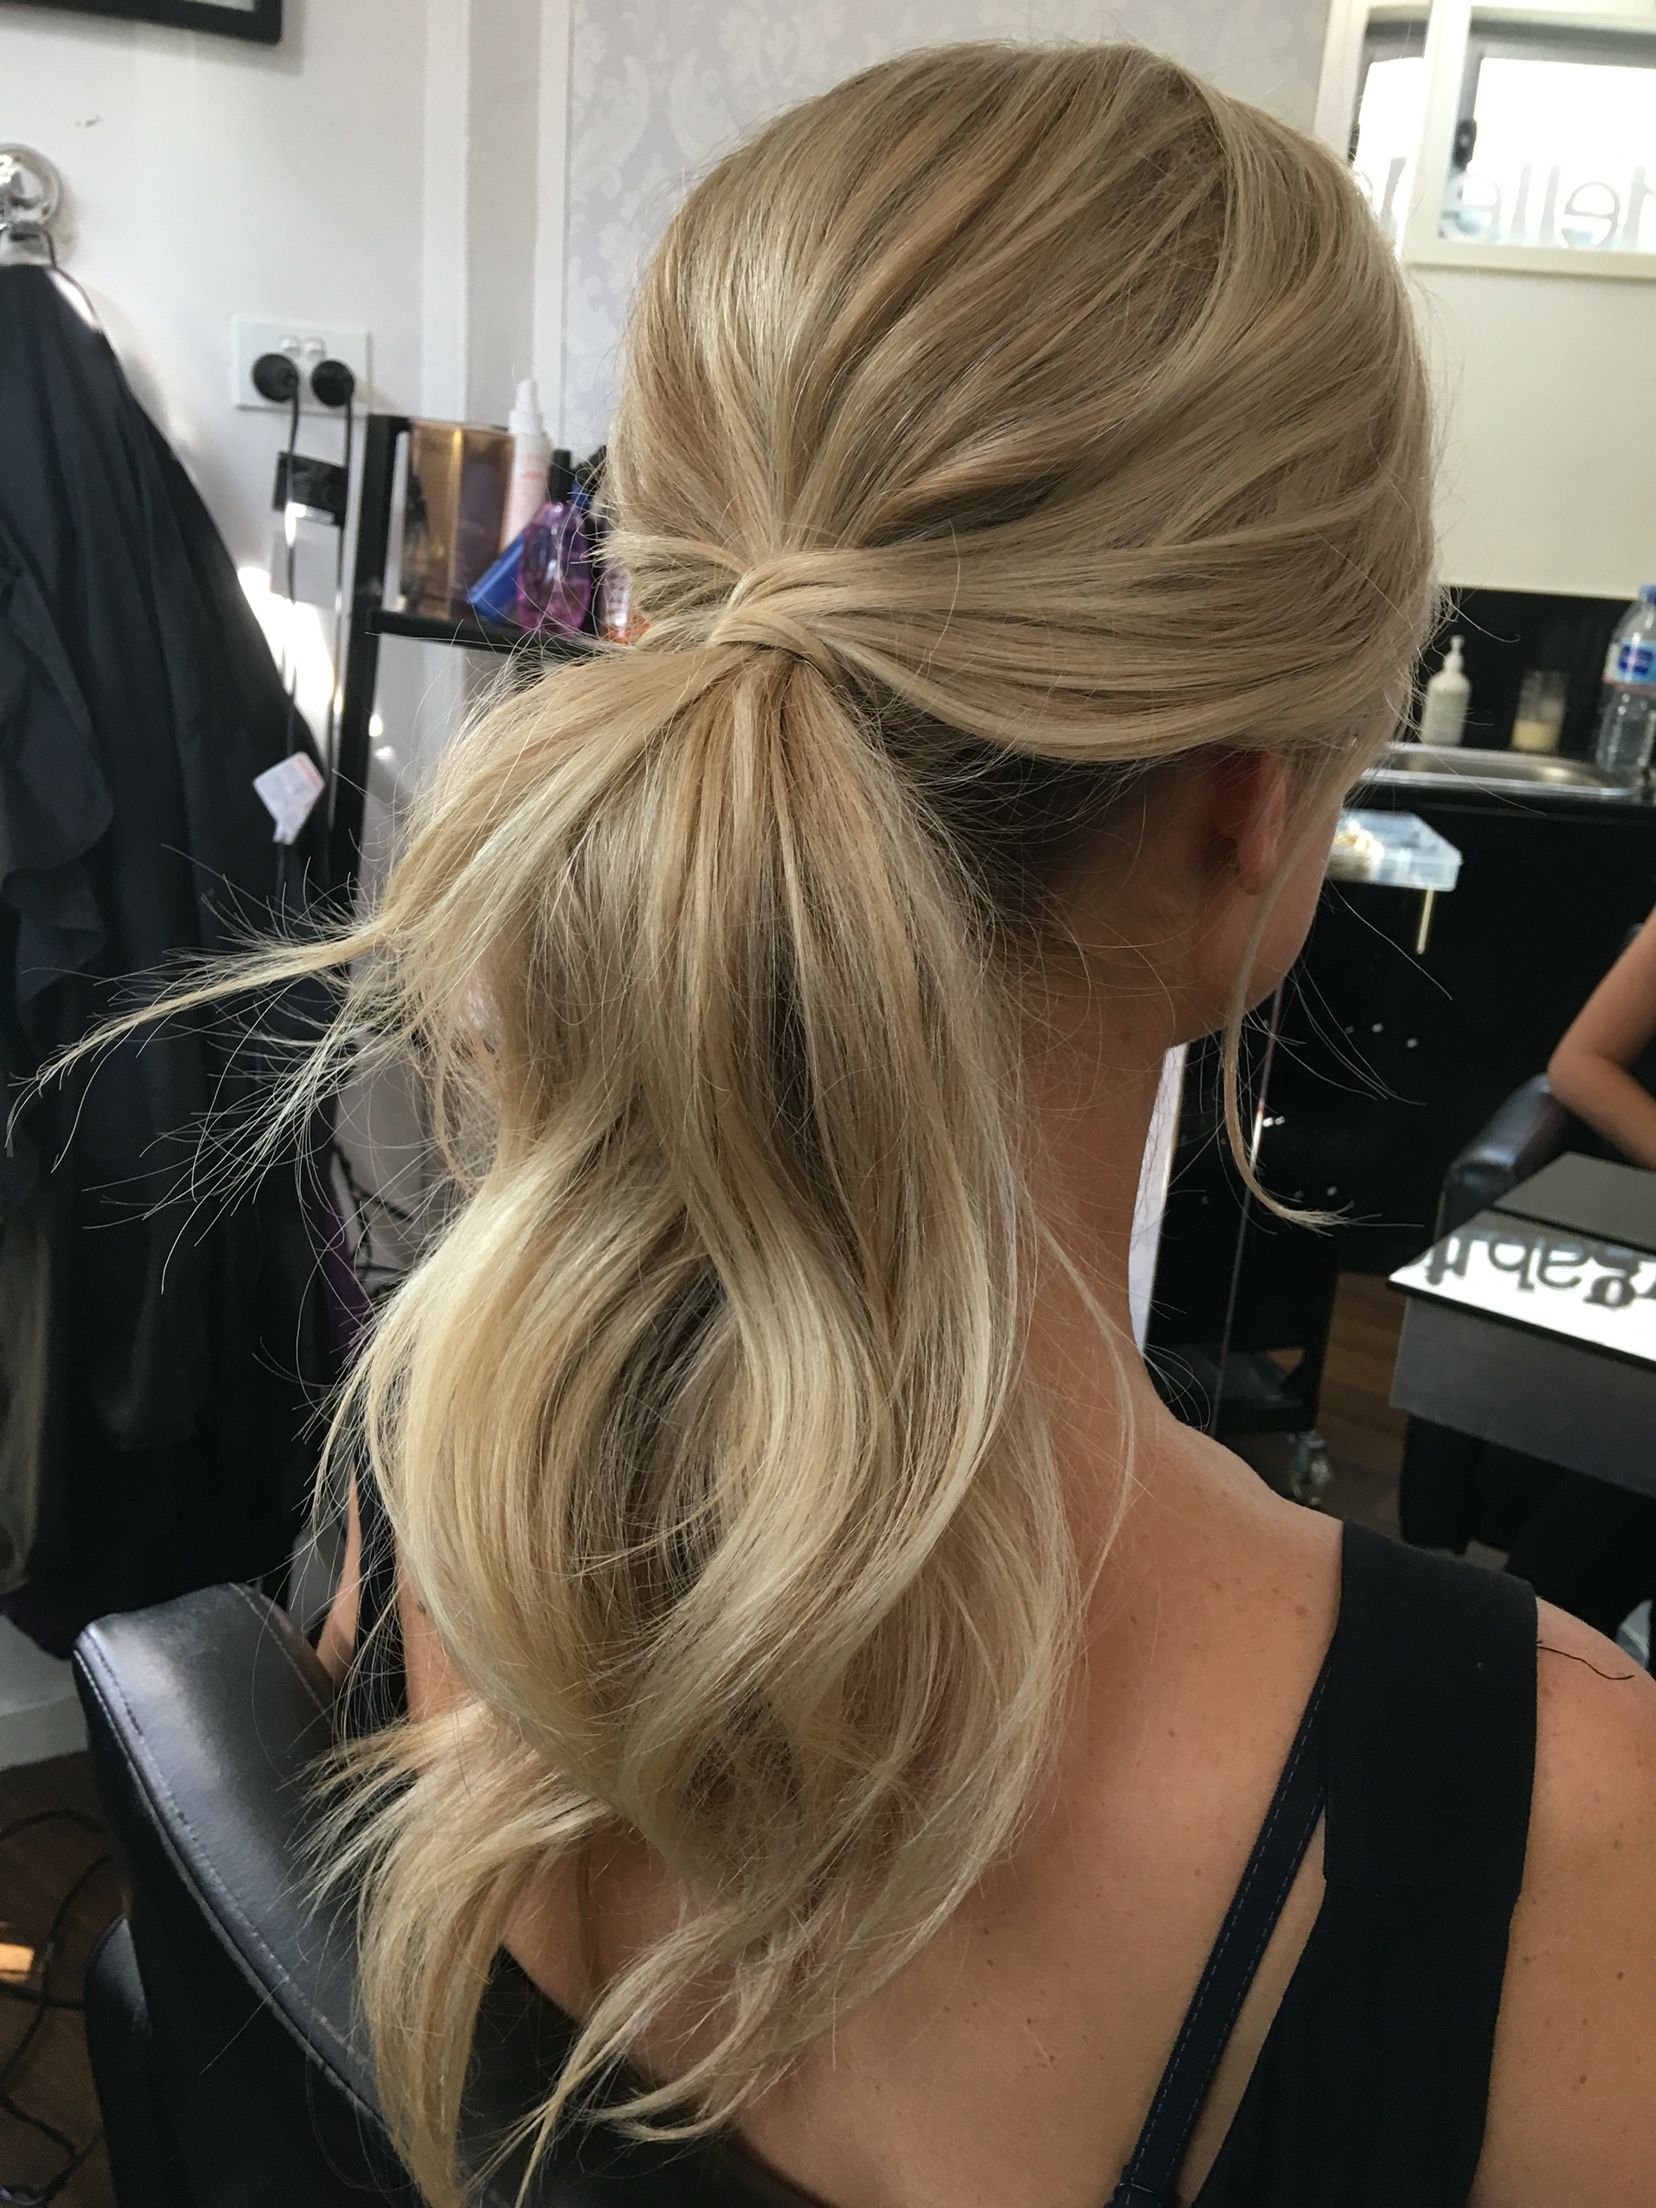 Grecian style updos for weddings updos hair styling - Pony Tail Hairstyles Bridal Hair Style Messy Ponytail